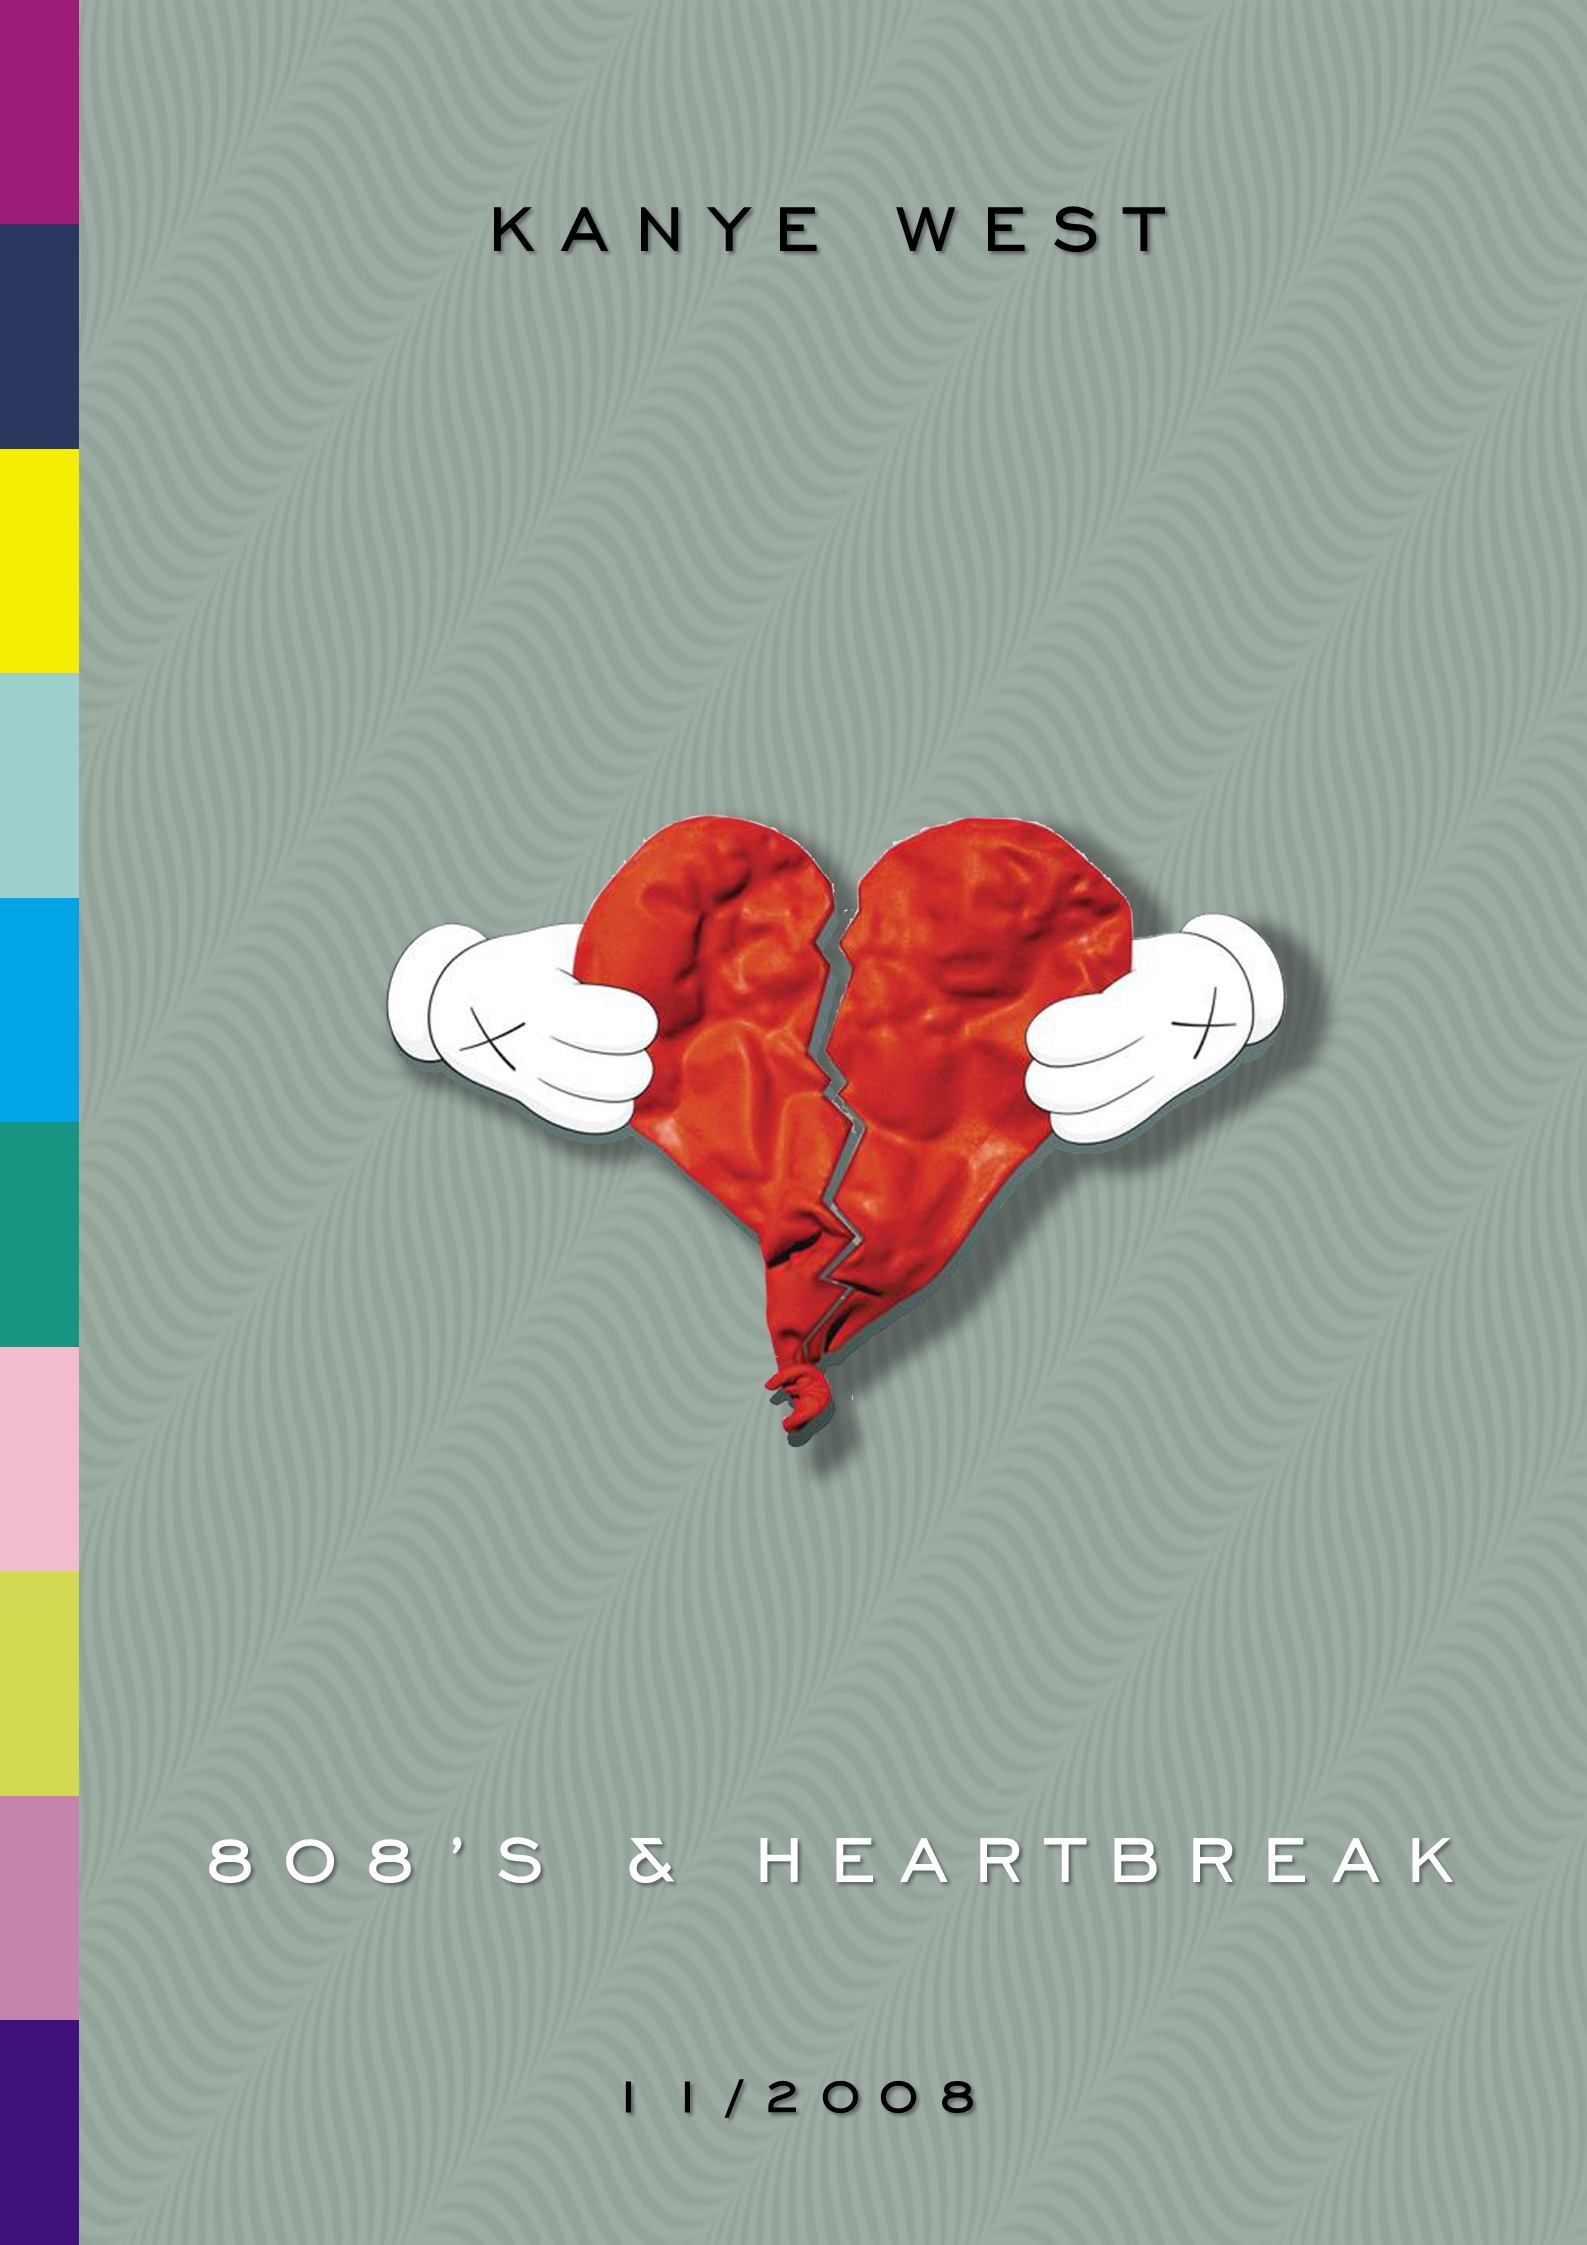 Kanye West 808 S And Heartbreak Poster Etsy In 2020 808s Heartbreak Heartbreak Art Heartbreak